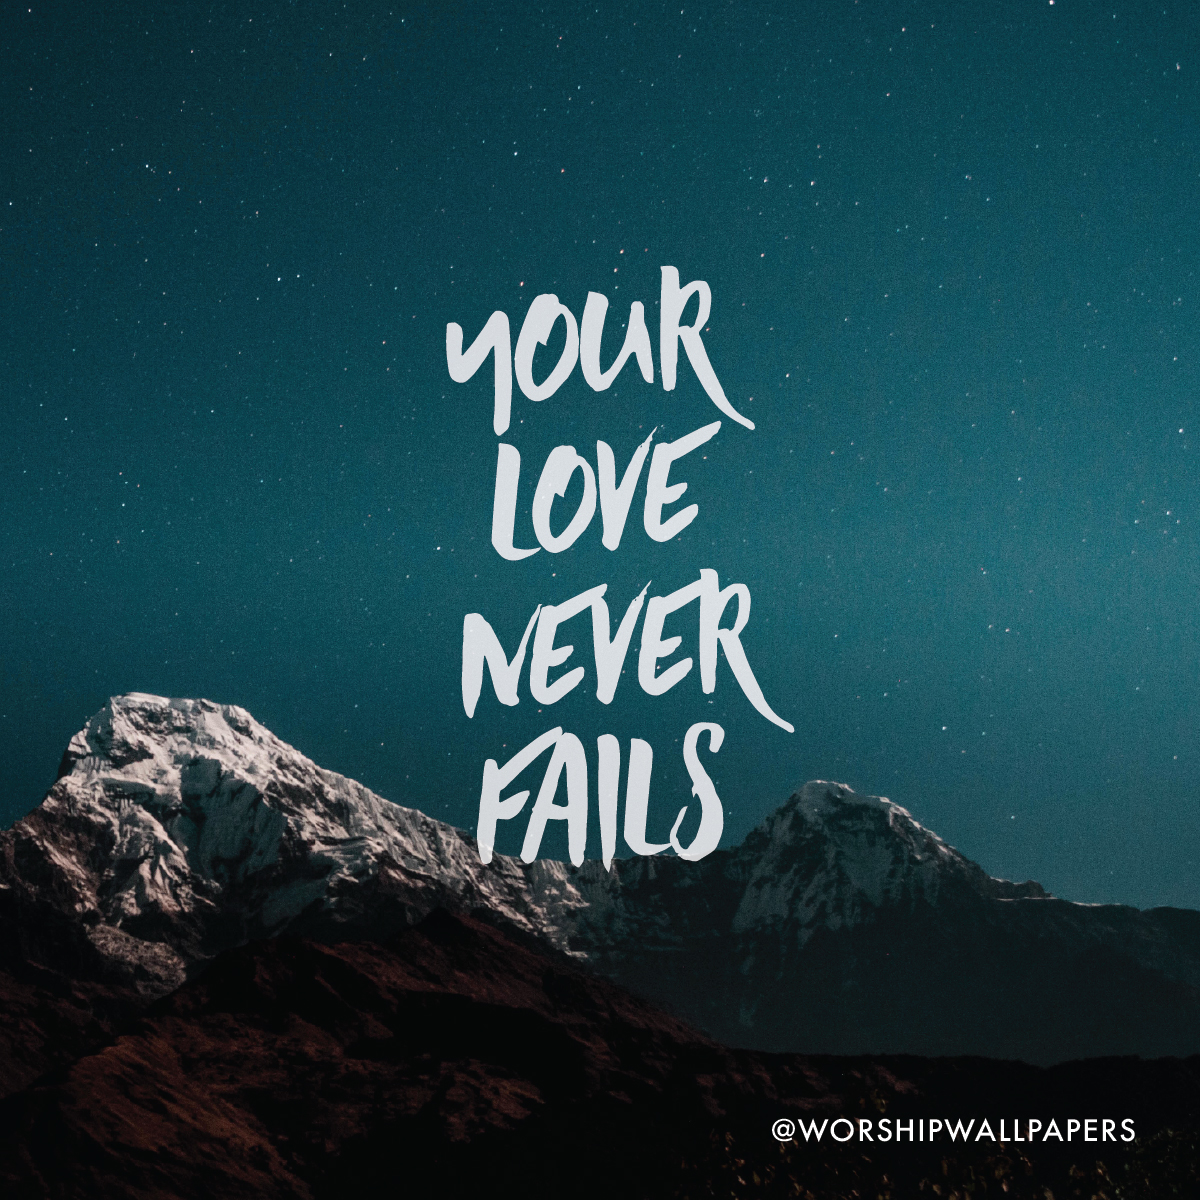 Love Images In: Your Love Never Fails // Jesus Culture